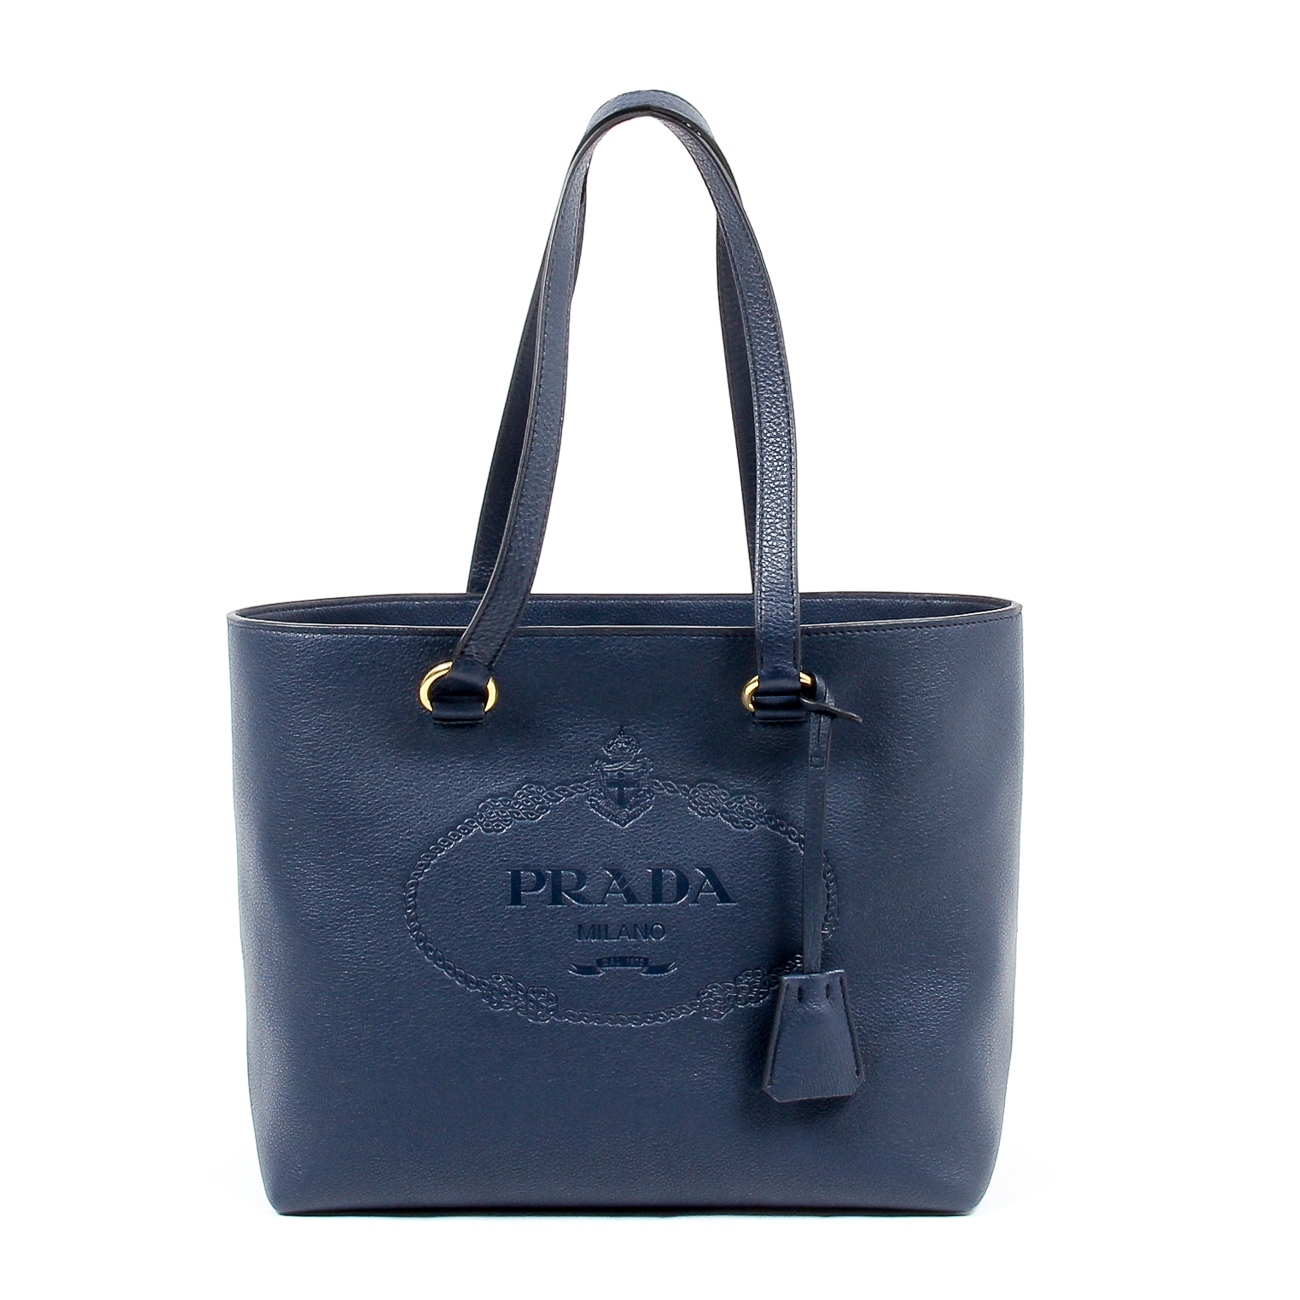 3ad2f06a950820 Prada Women's Handbags | Stanford Center for Opportunity Policy in ...